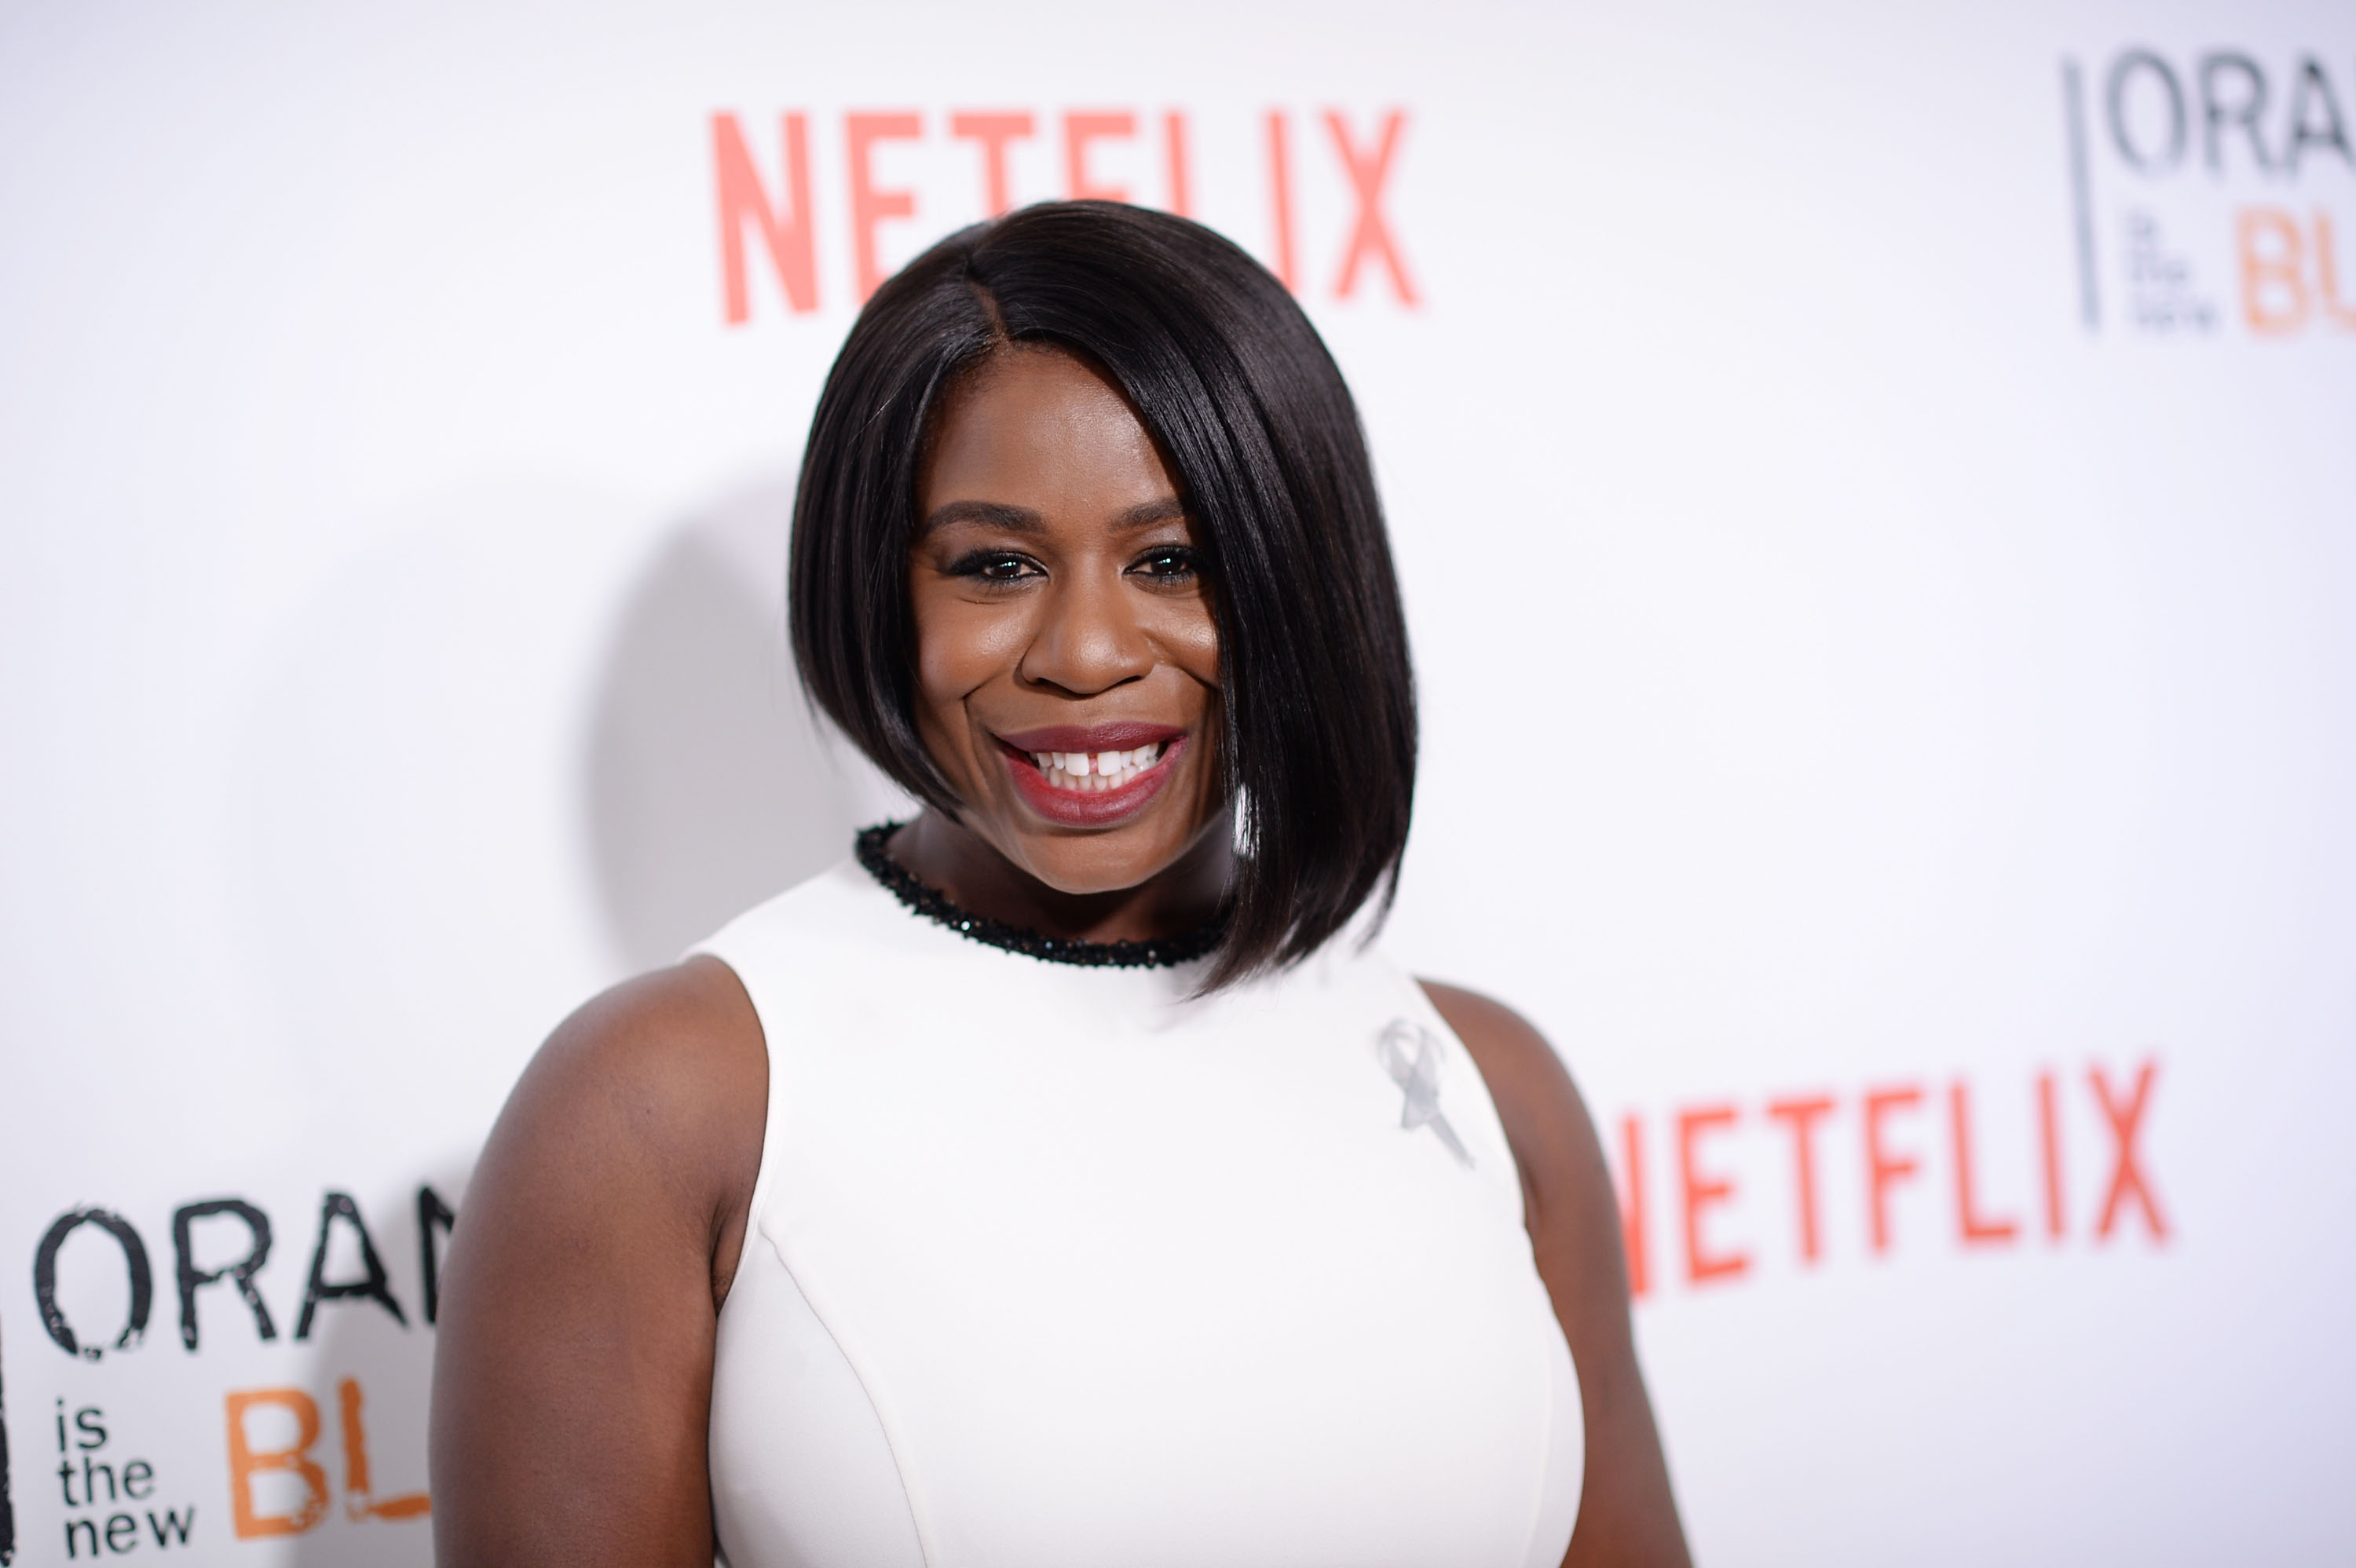 Uzo Aduba attends  Orange Is The New Black  premiere at SVA Theater on June 16, 2016 in New York City.